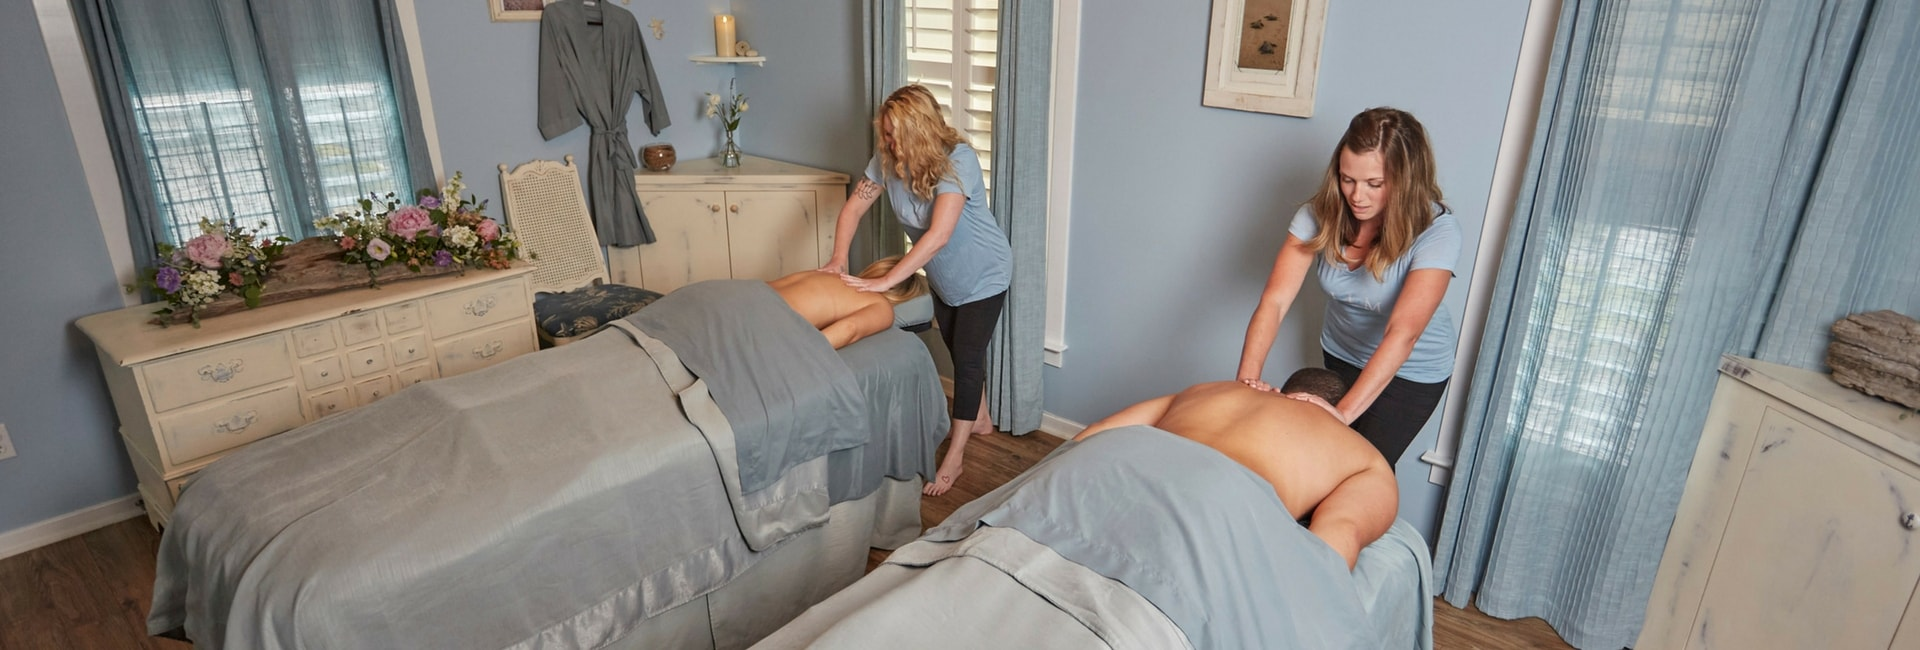 Coastal Massage & Spa is a One Stop Shop for Valentine's Day Shopping